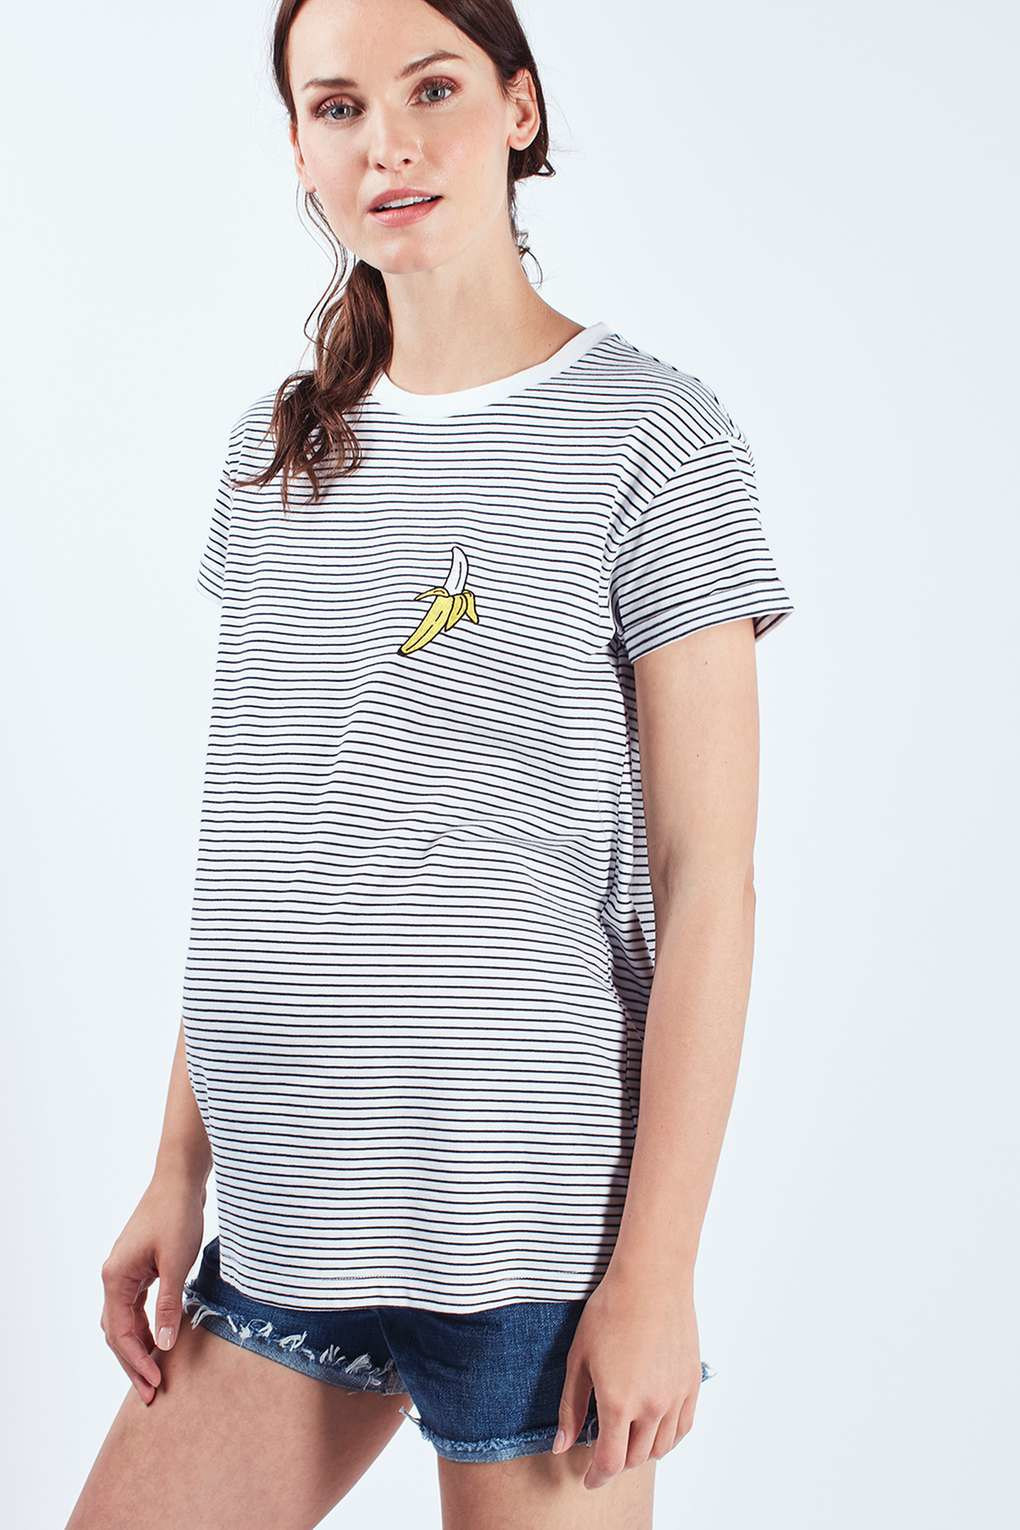 But after pregnancy, there's a new type of clothing to start thinking about -- nursing tops! While you can manage with some of the tops you already own, you'll likely need to get a few more that can better suit the nursing lifestyle.